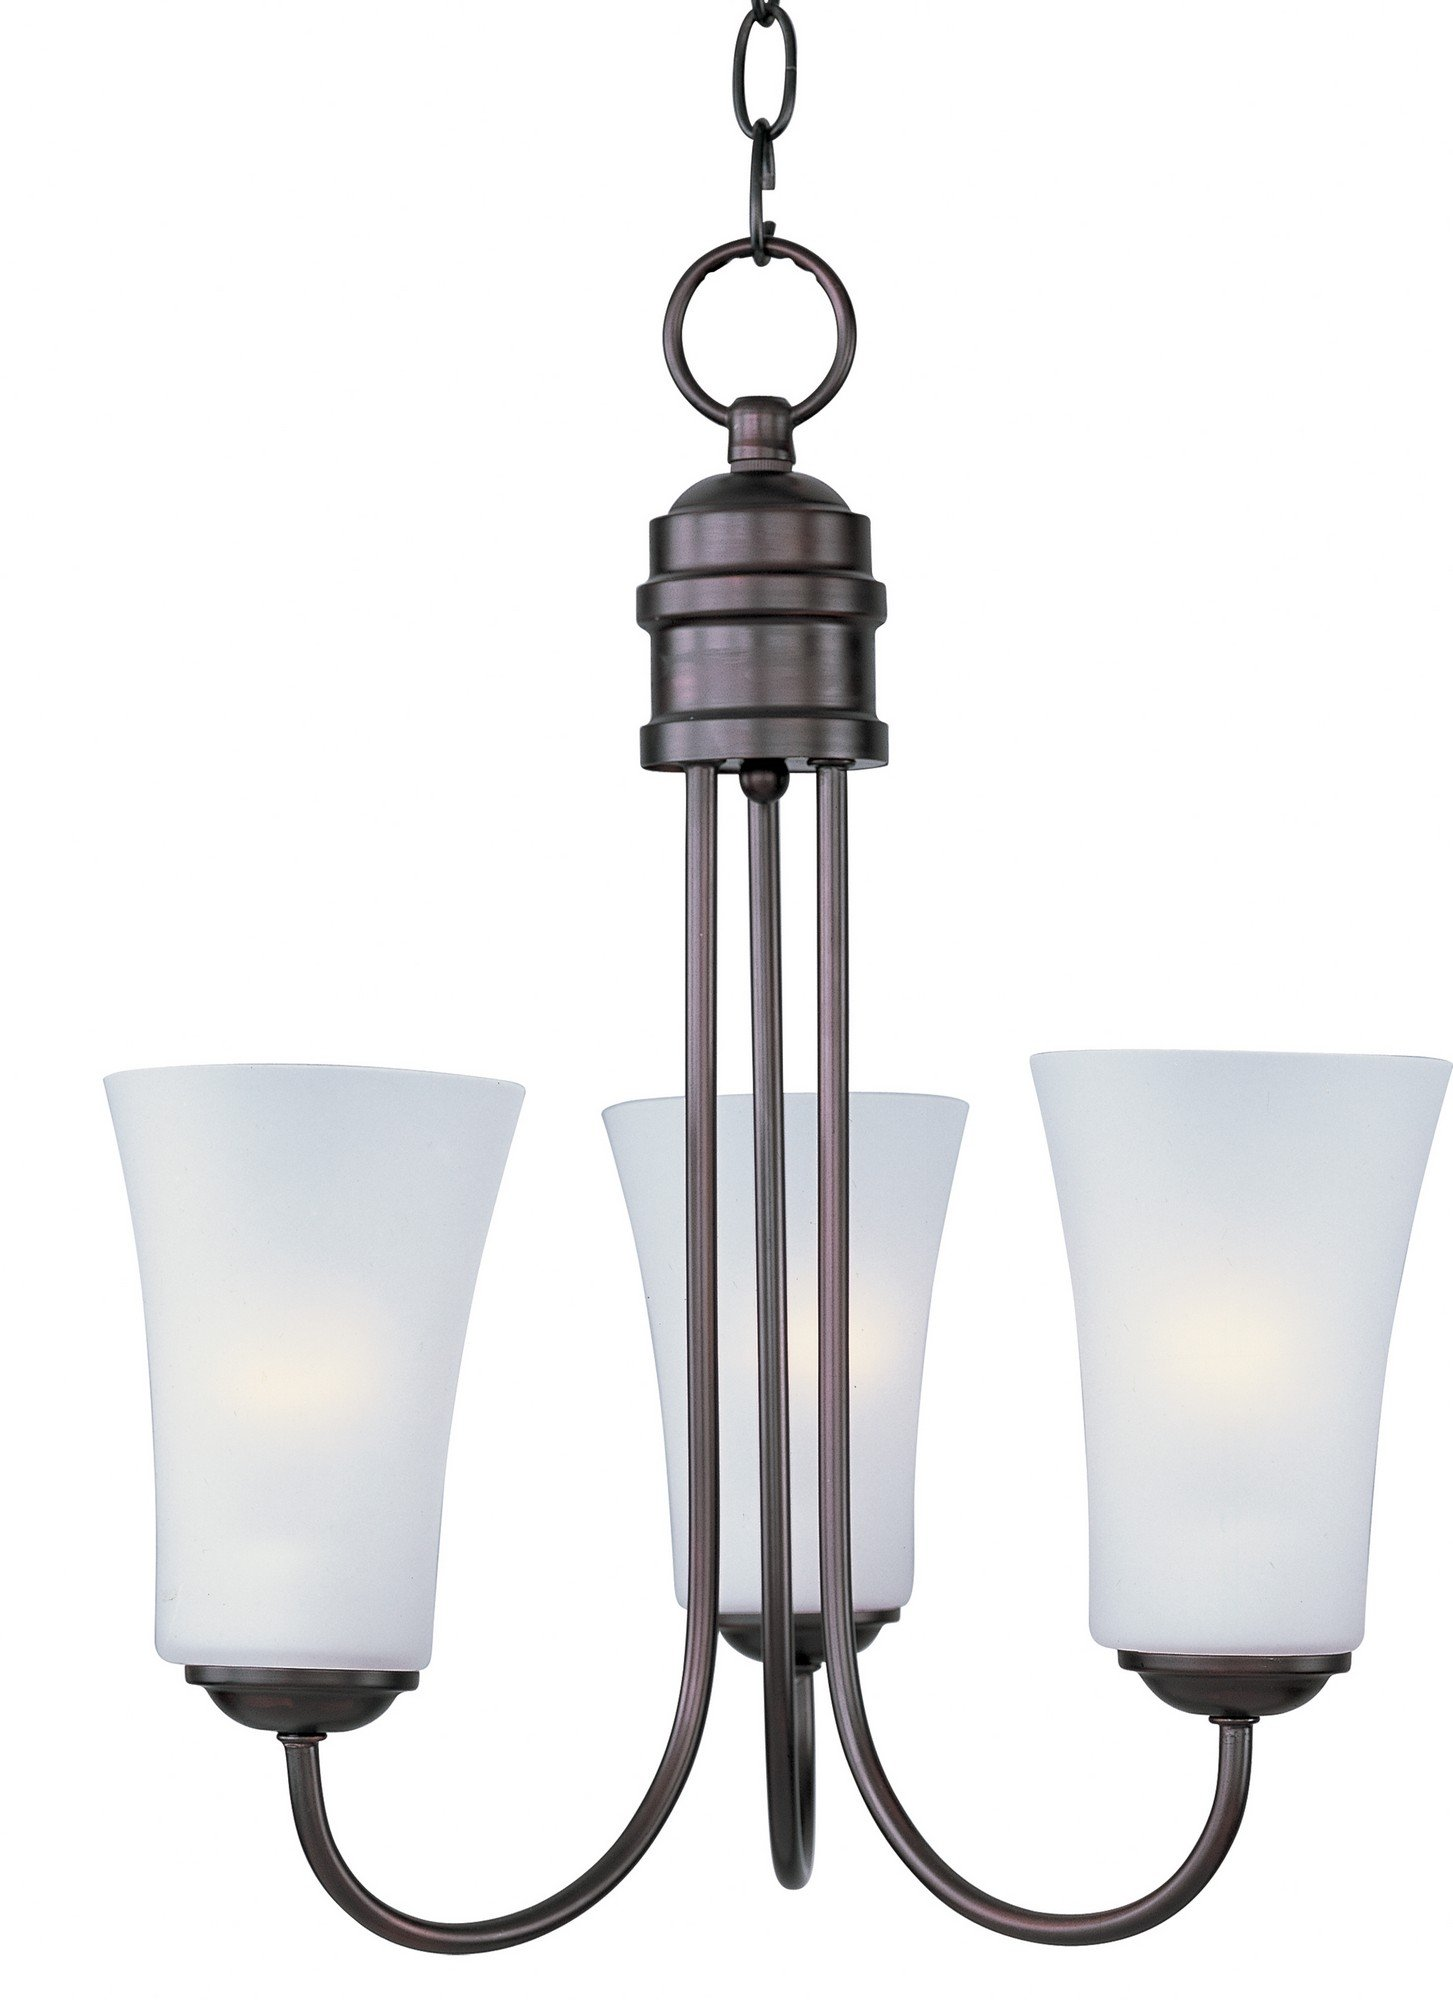 Maxim 10043FTOI Logan 3-Light Chandelier Wall Sconce, Oil Rubbed Bronze Finish, Frosted Glass, MB Incandescent Incandescent Bulb , 100W Max., Dry Safety Rating, Standard Dimmable, Glass Shade Material, 3450 Rated Lumens by Maxim Lighting (Image #1)